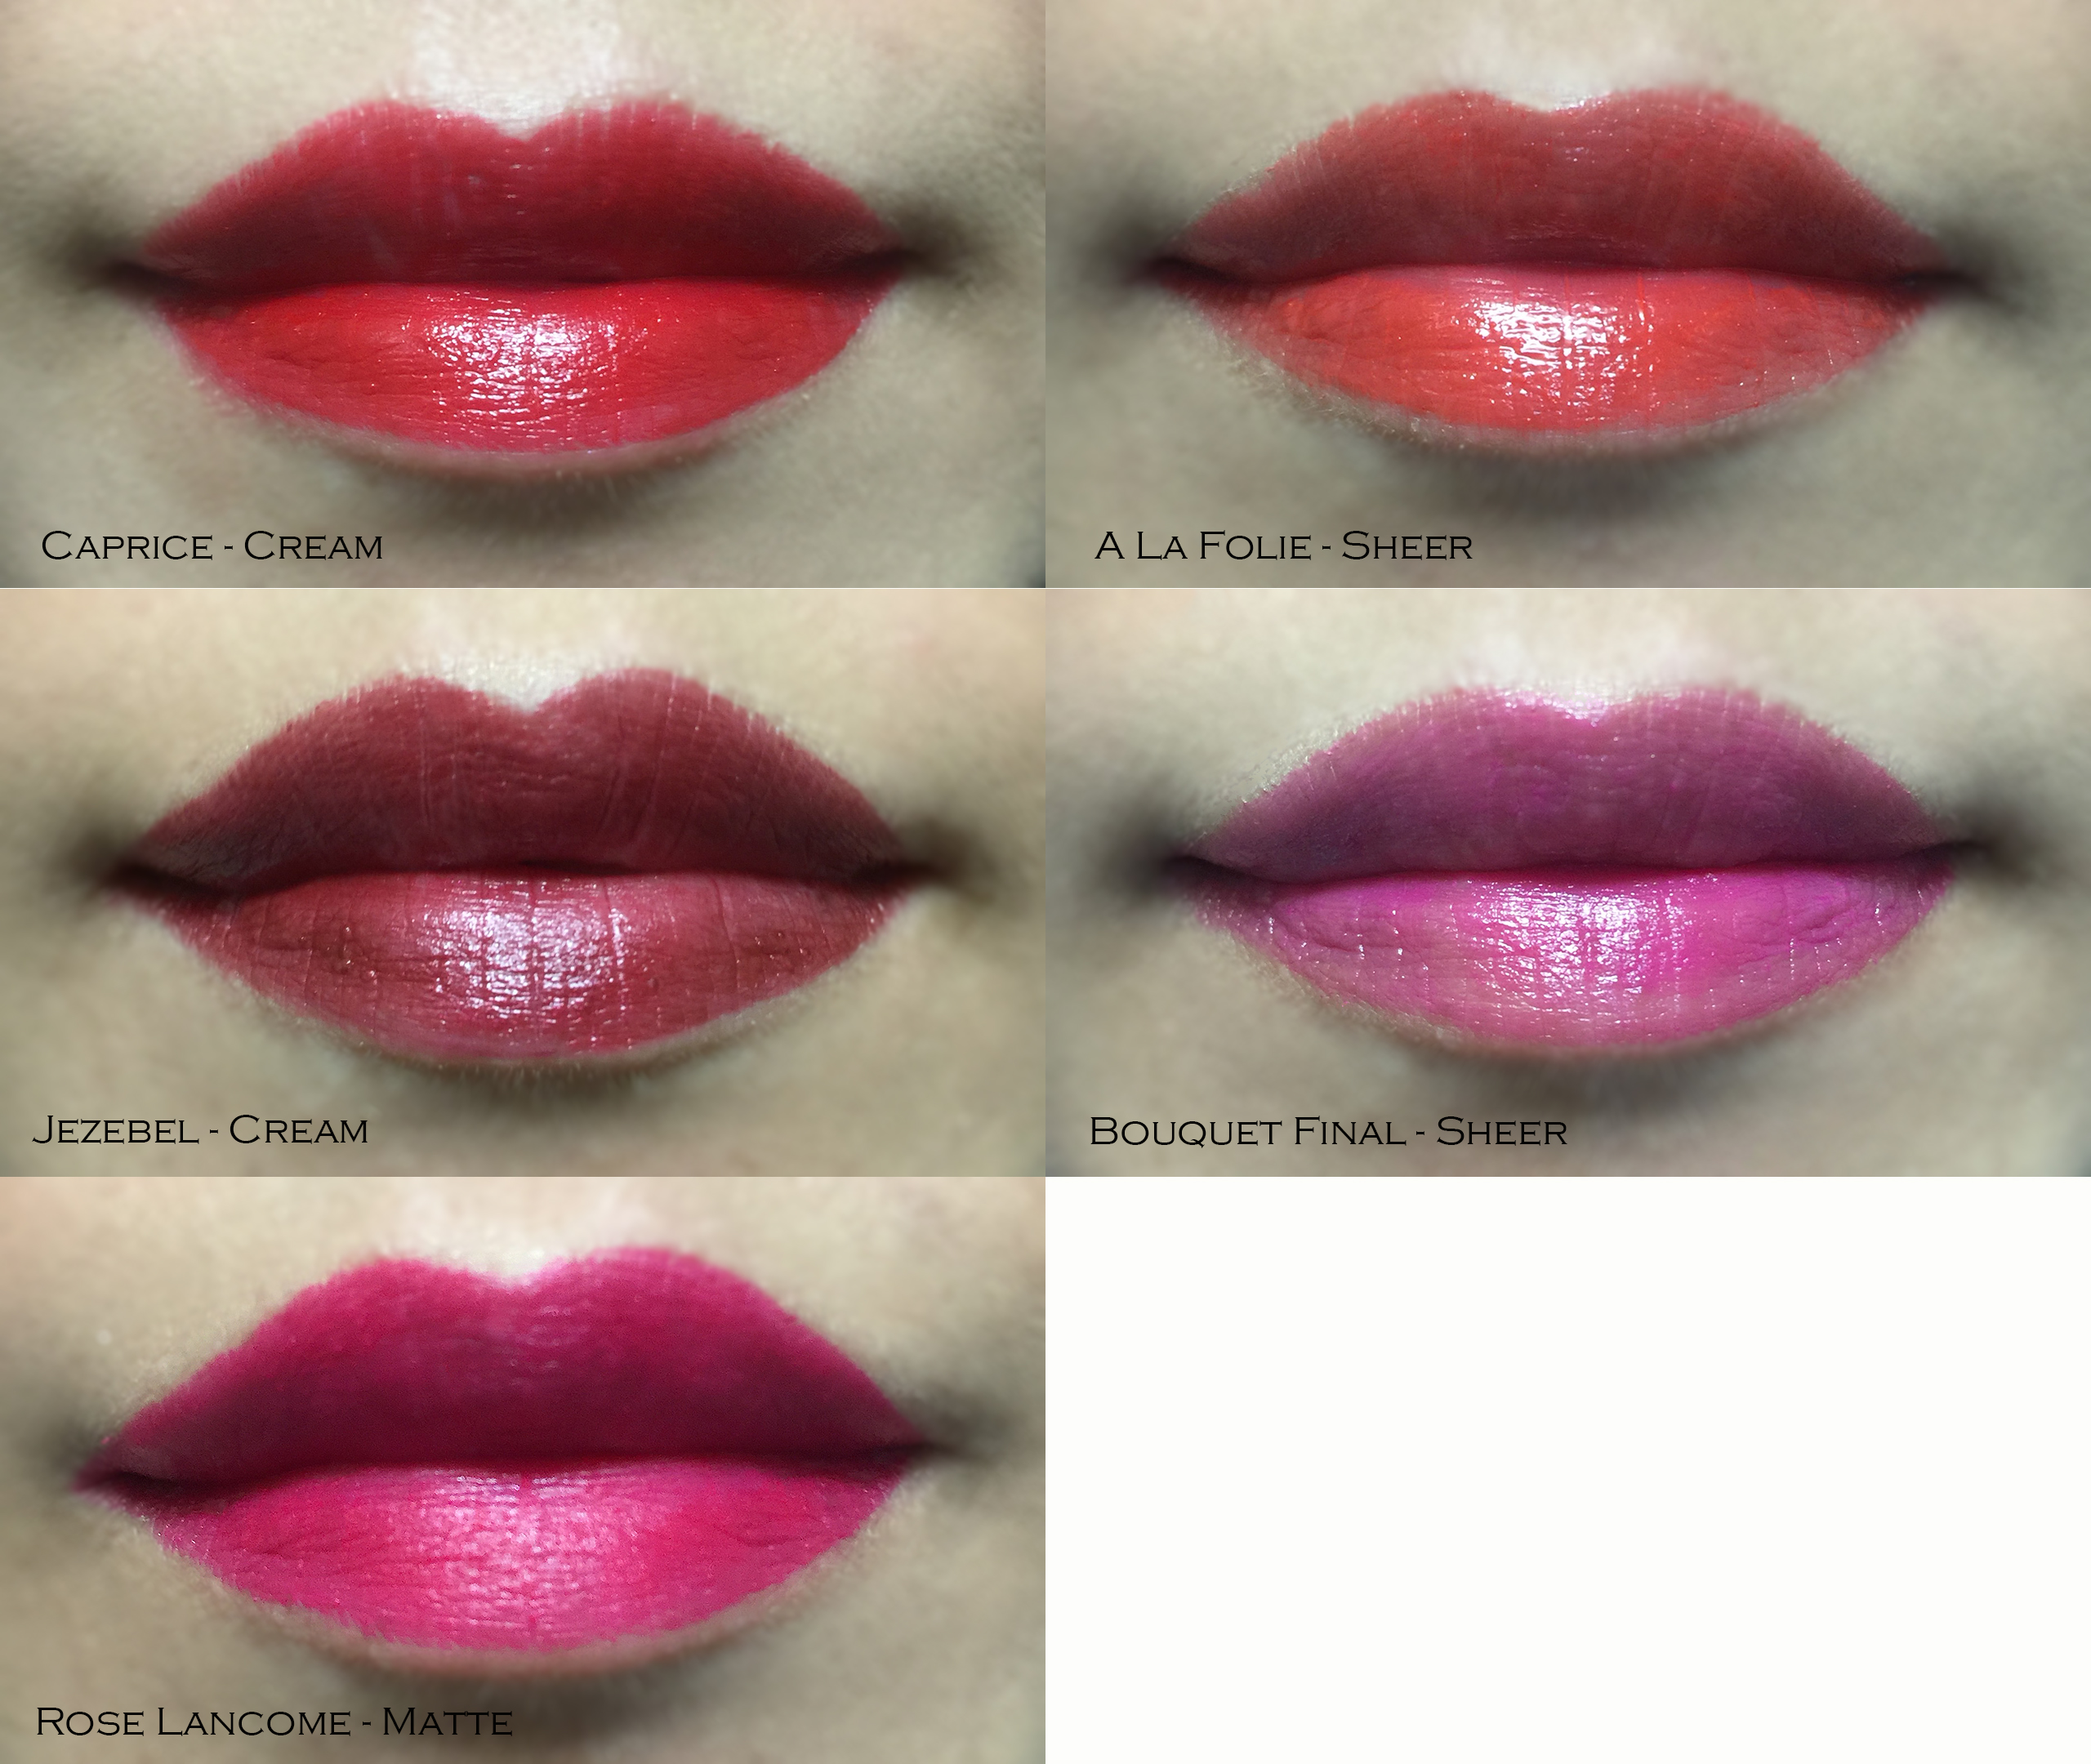 Lancome L'Absolu Rouge Lip Swatches